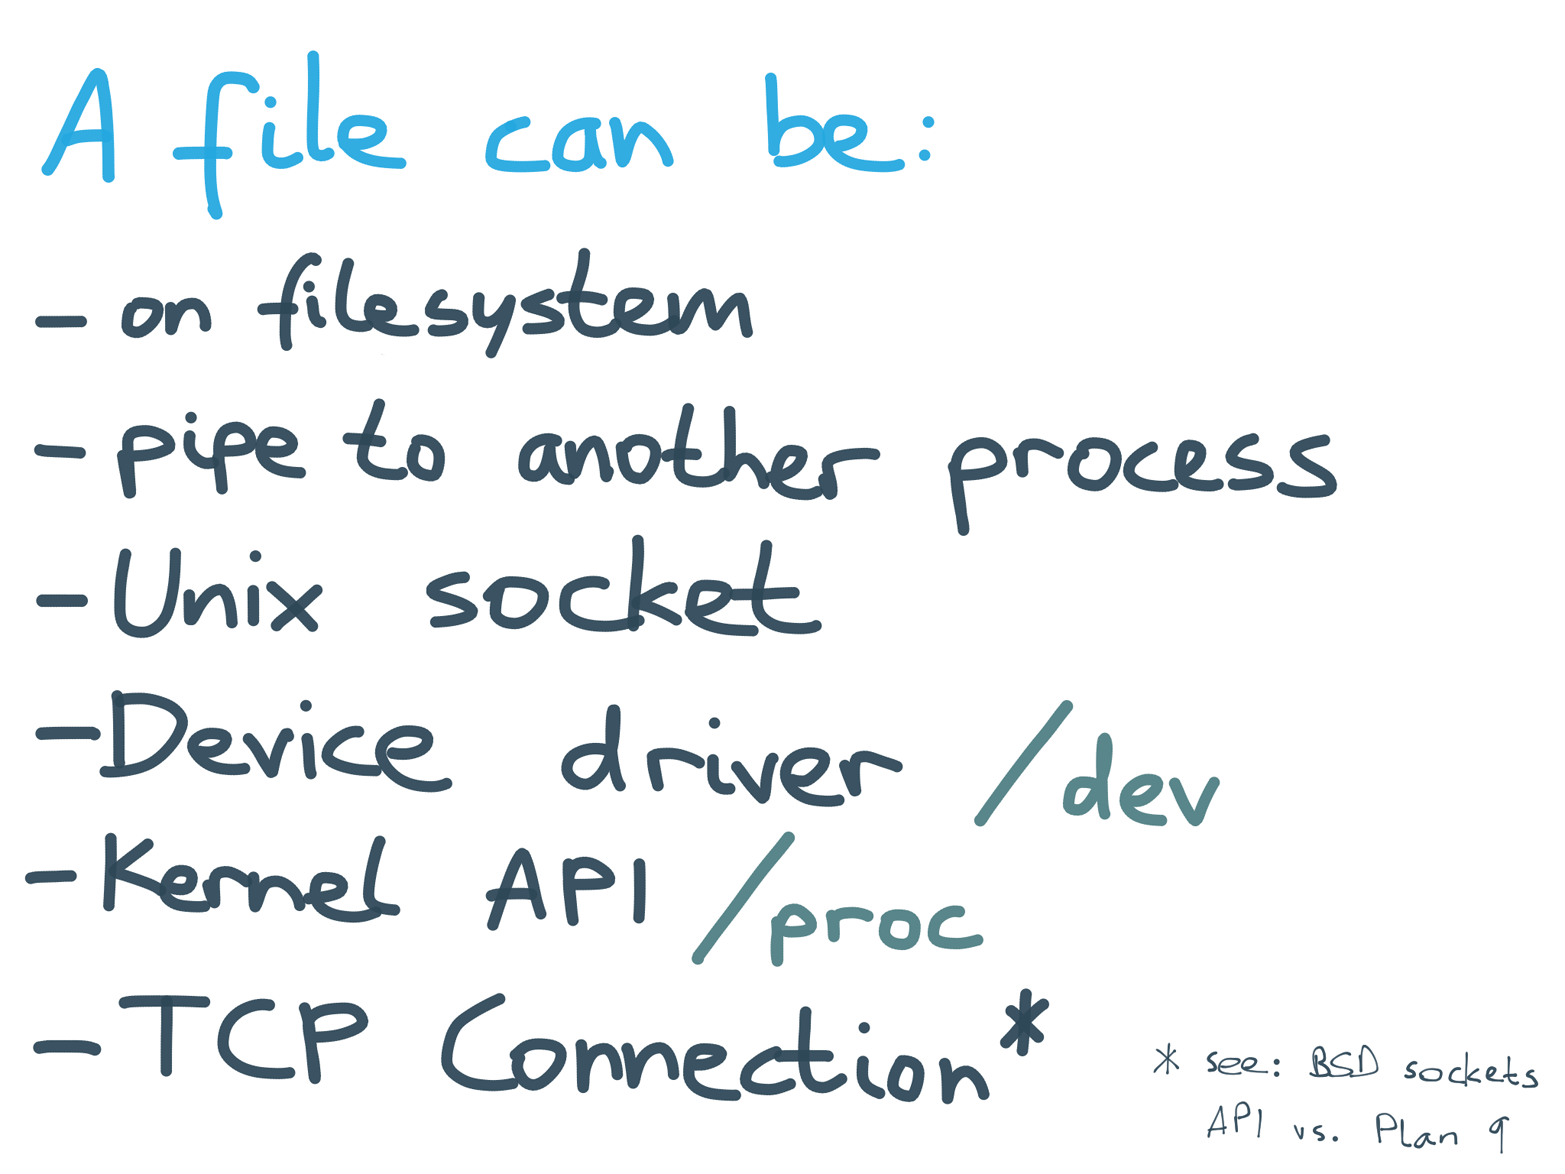 The file abstraction can be used to represent many different hardware and software concepts.